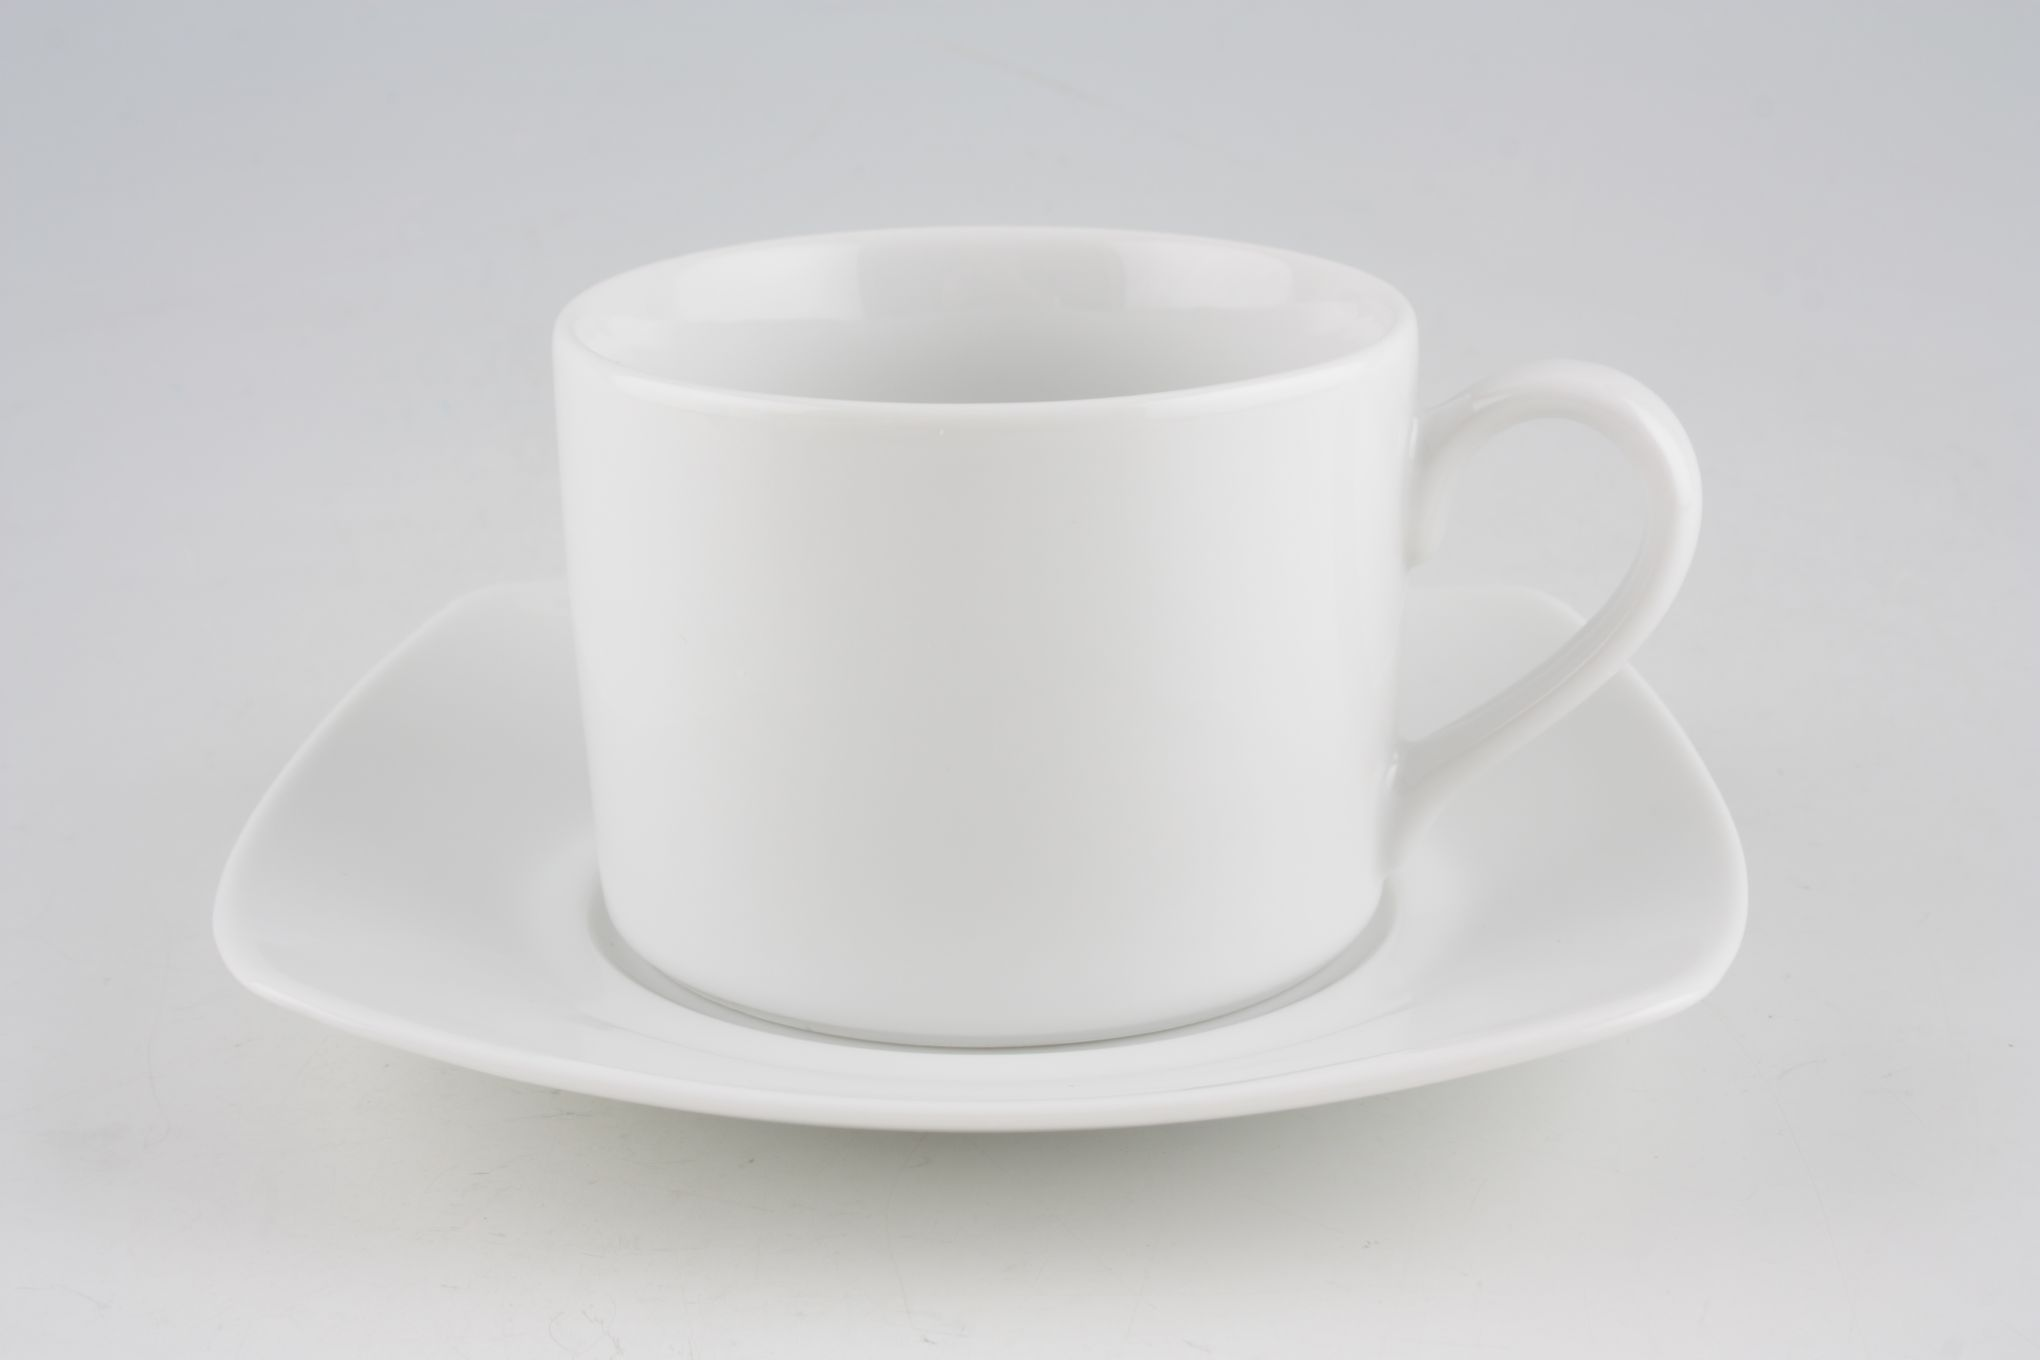 Royal Worcester Classic White - Classics Set (Tea) 4 x Straight sided Teacups and 4 x Square Saucers thumb 2